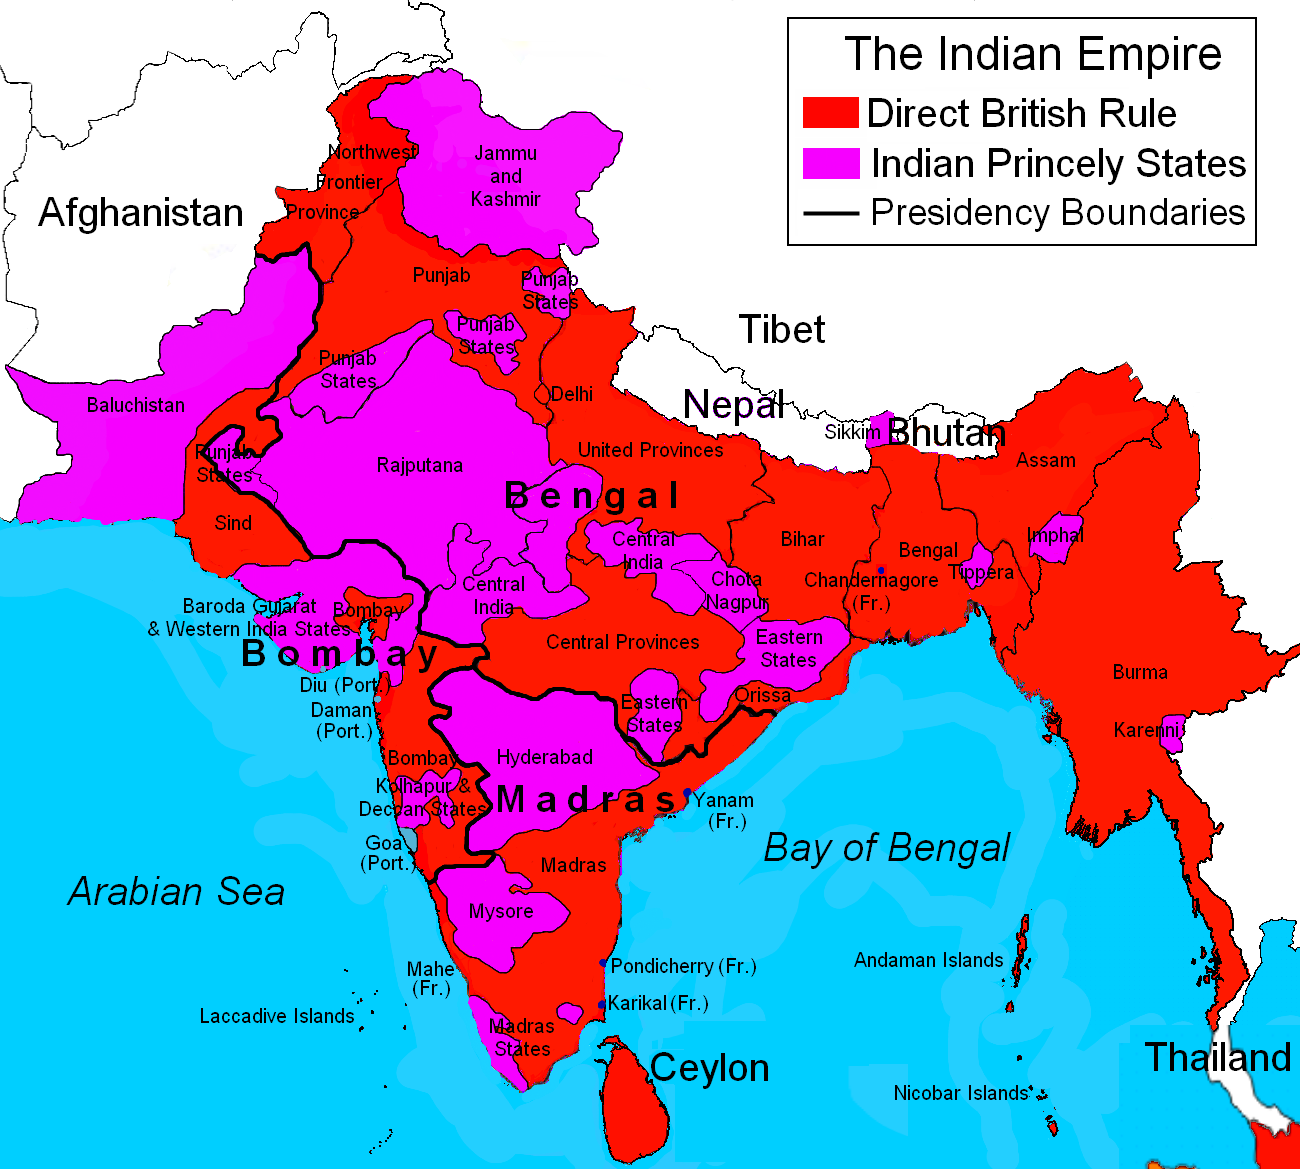 british empire in india the Discuss the british perception of india and britain's role in the subcontinent examine the methods used by the british to establish and then maintain control of india to the british, india.